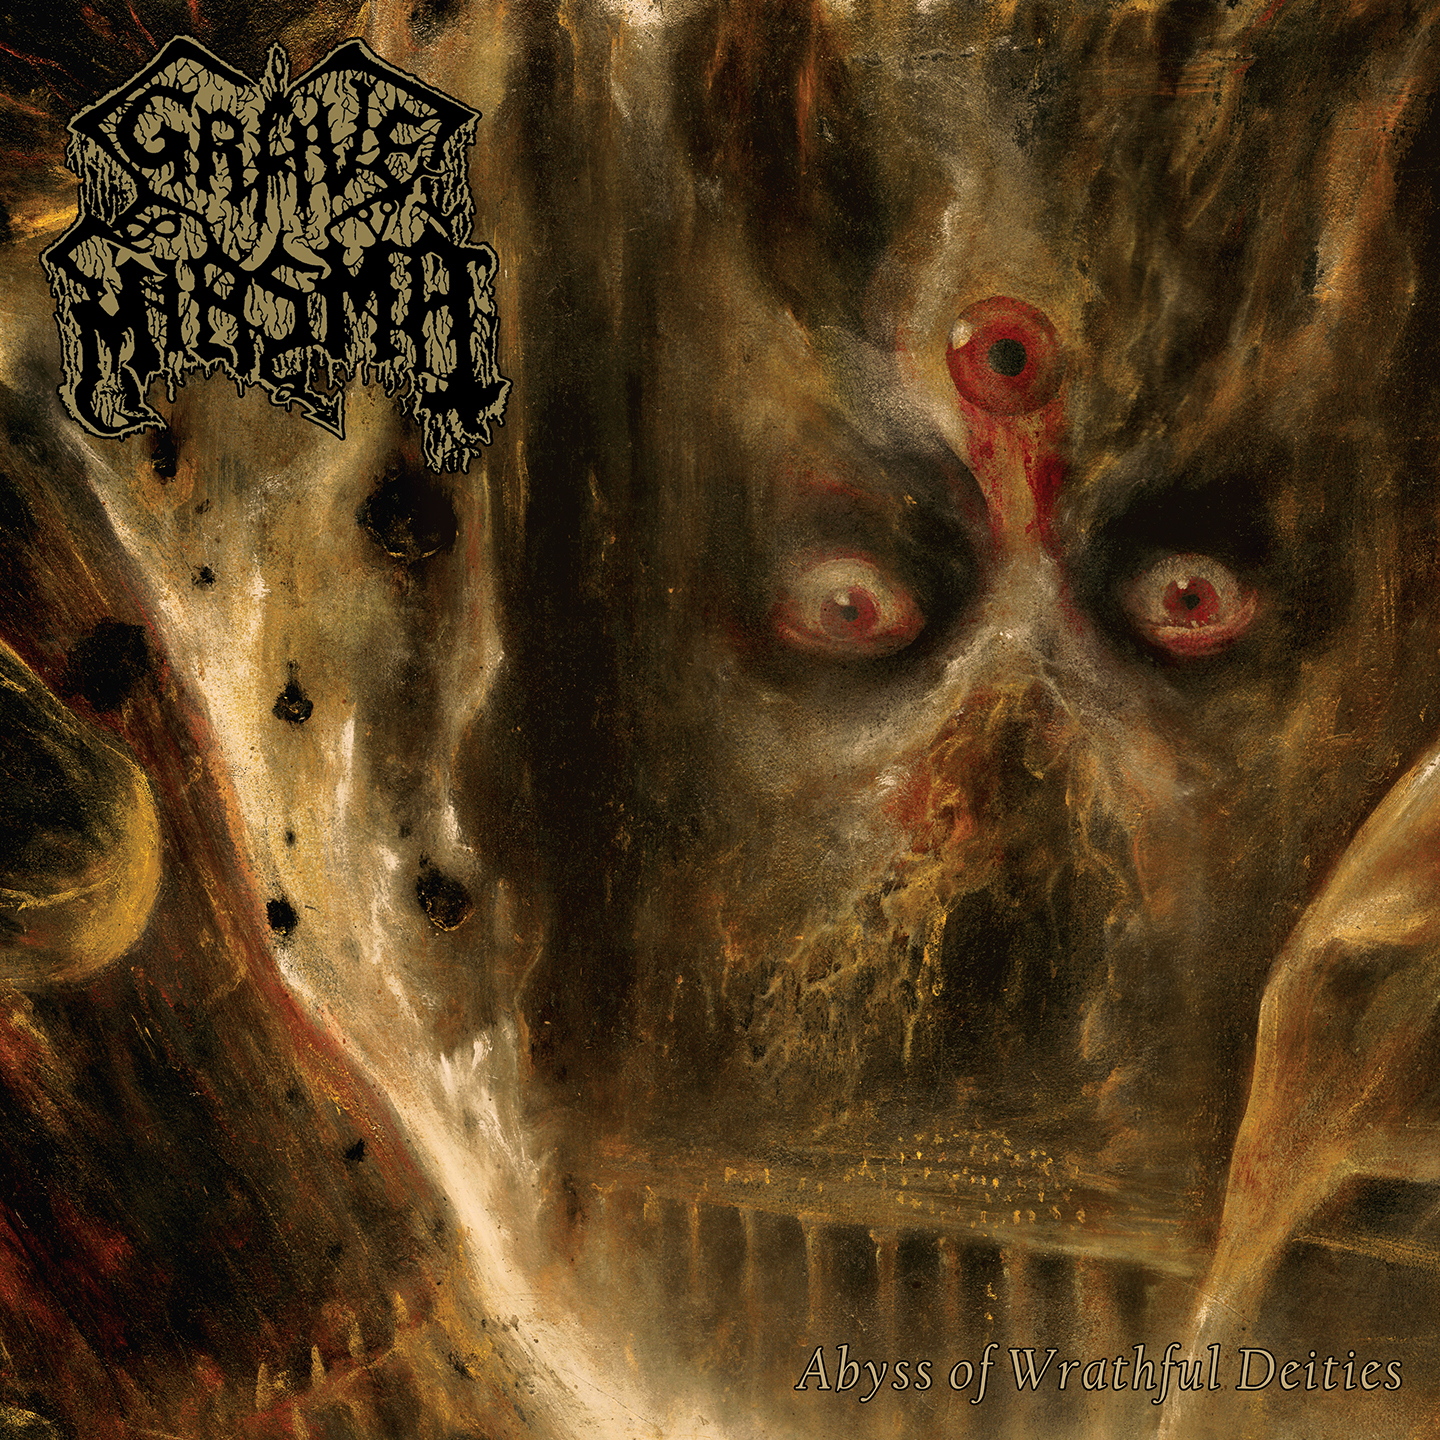 Grave Miasma - Abyss of Wrathful Deities Review | Angry Metal Guy